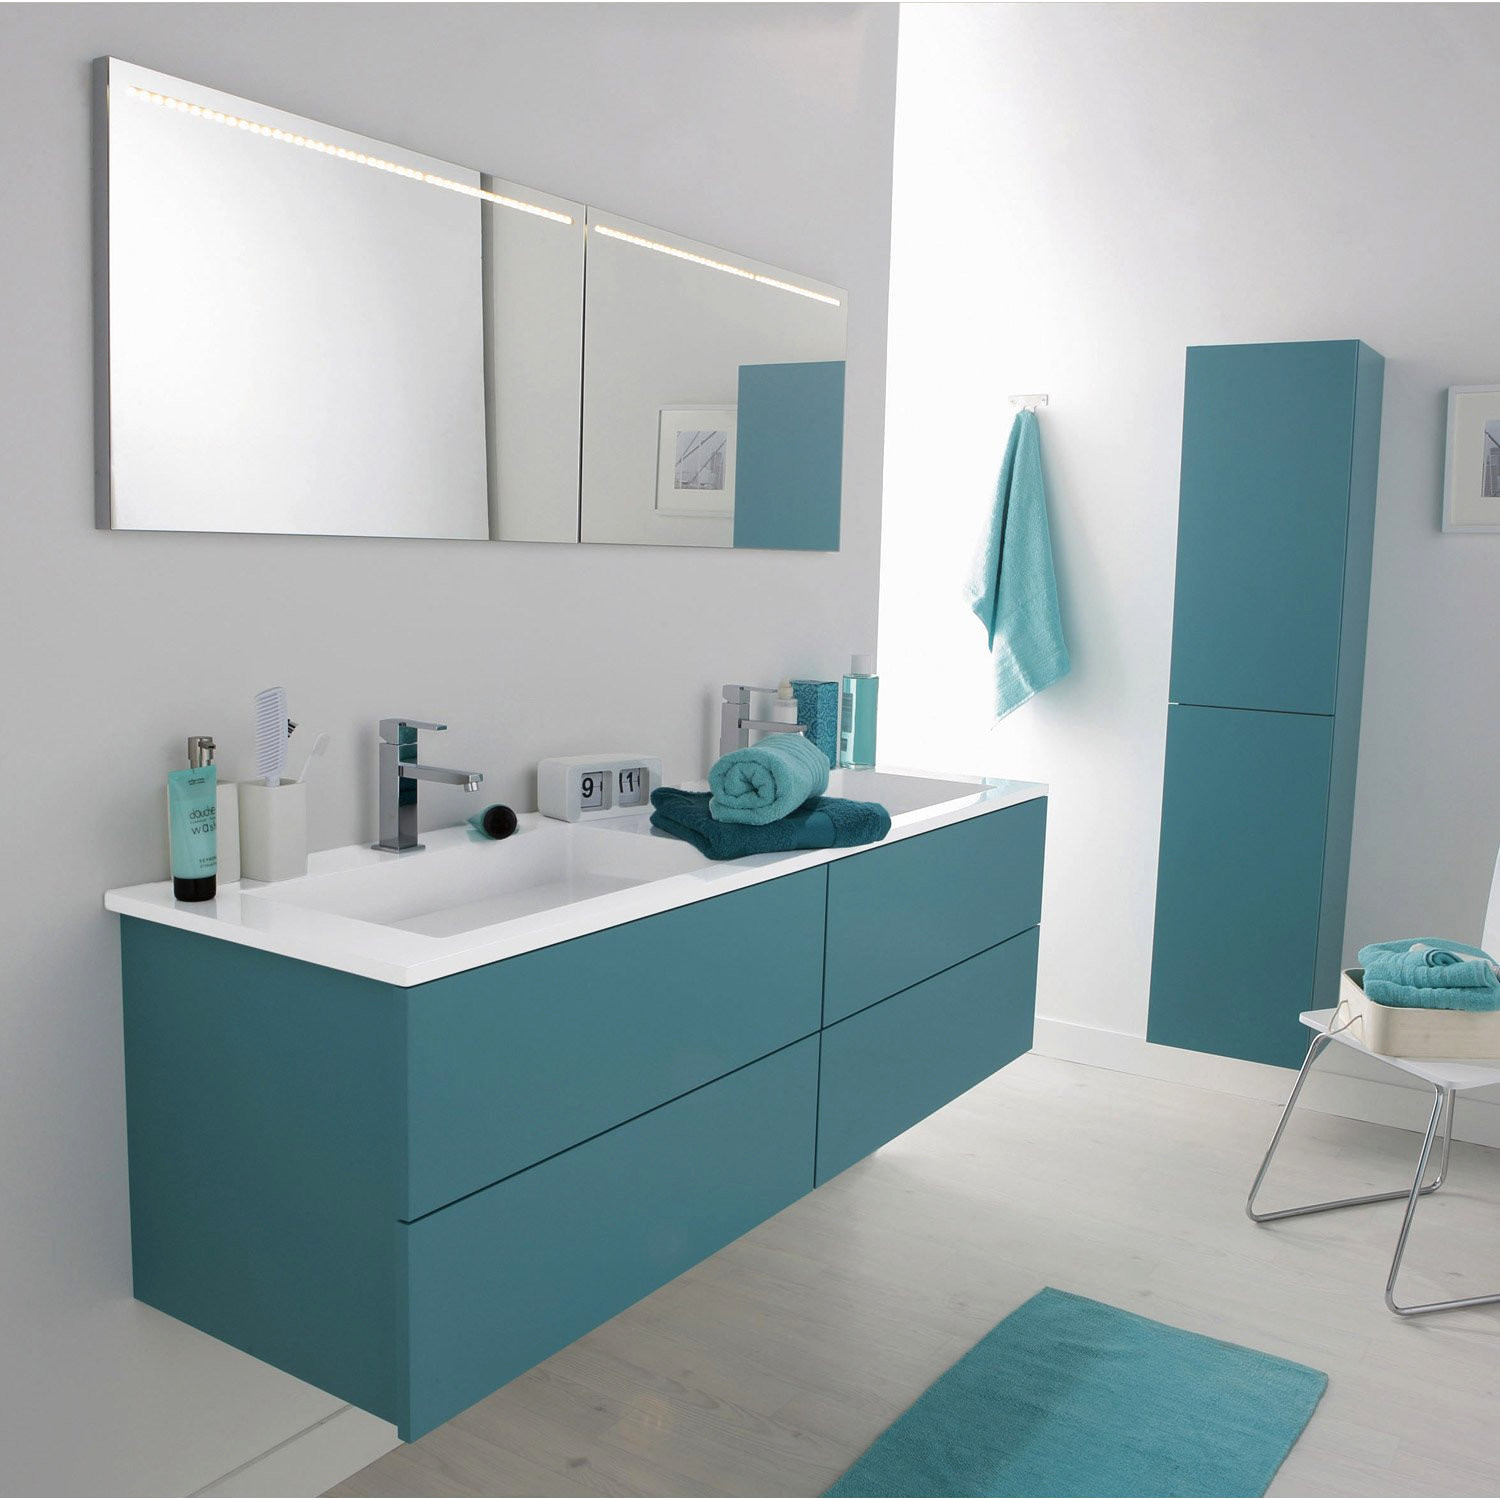 Salle De Bain Remix Leroy Merlin Luxe Collection Meuble Remix Impressionnant Miroir Led Leroy Merlin Cool Great